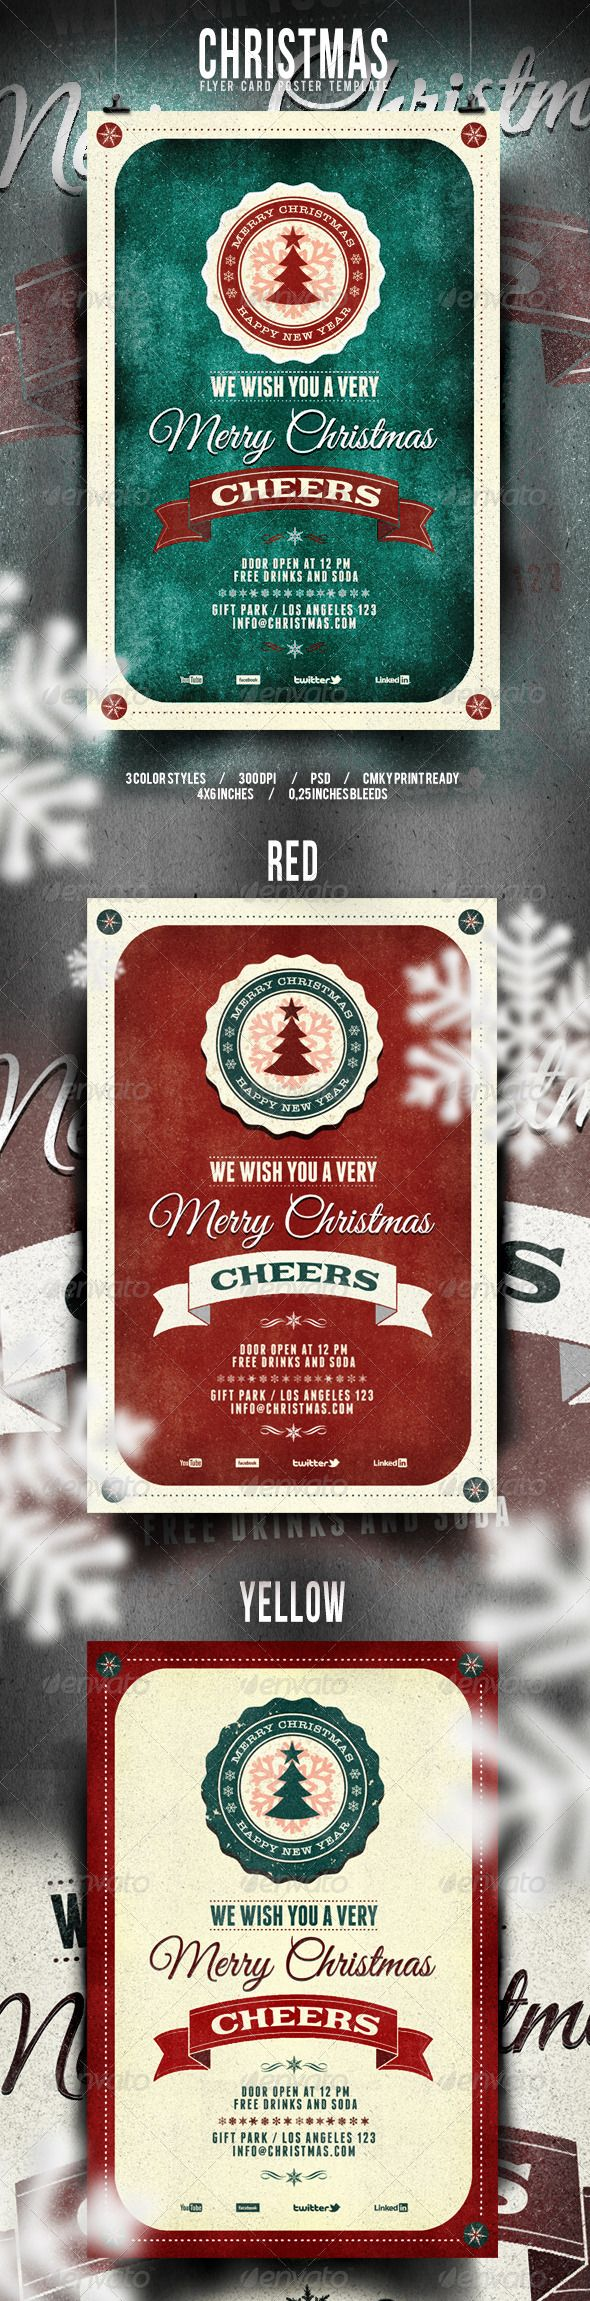 Christmas Flyer/Poster - Retro Vol. 3